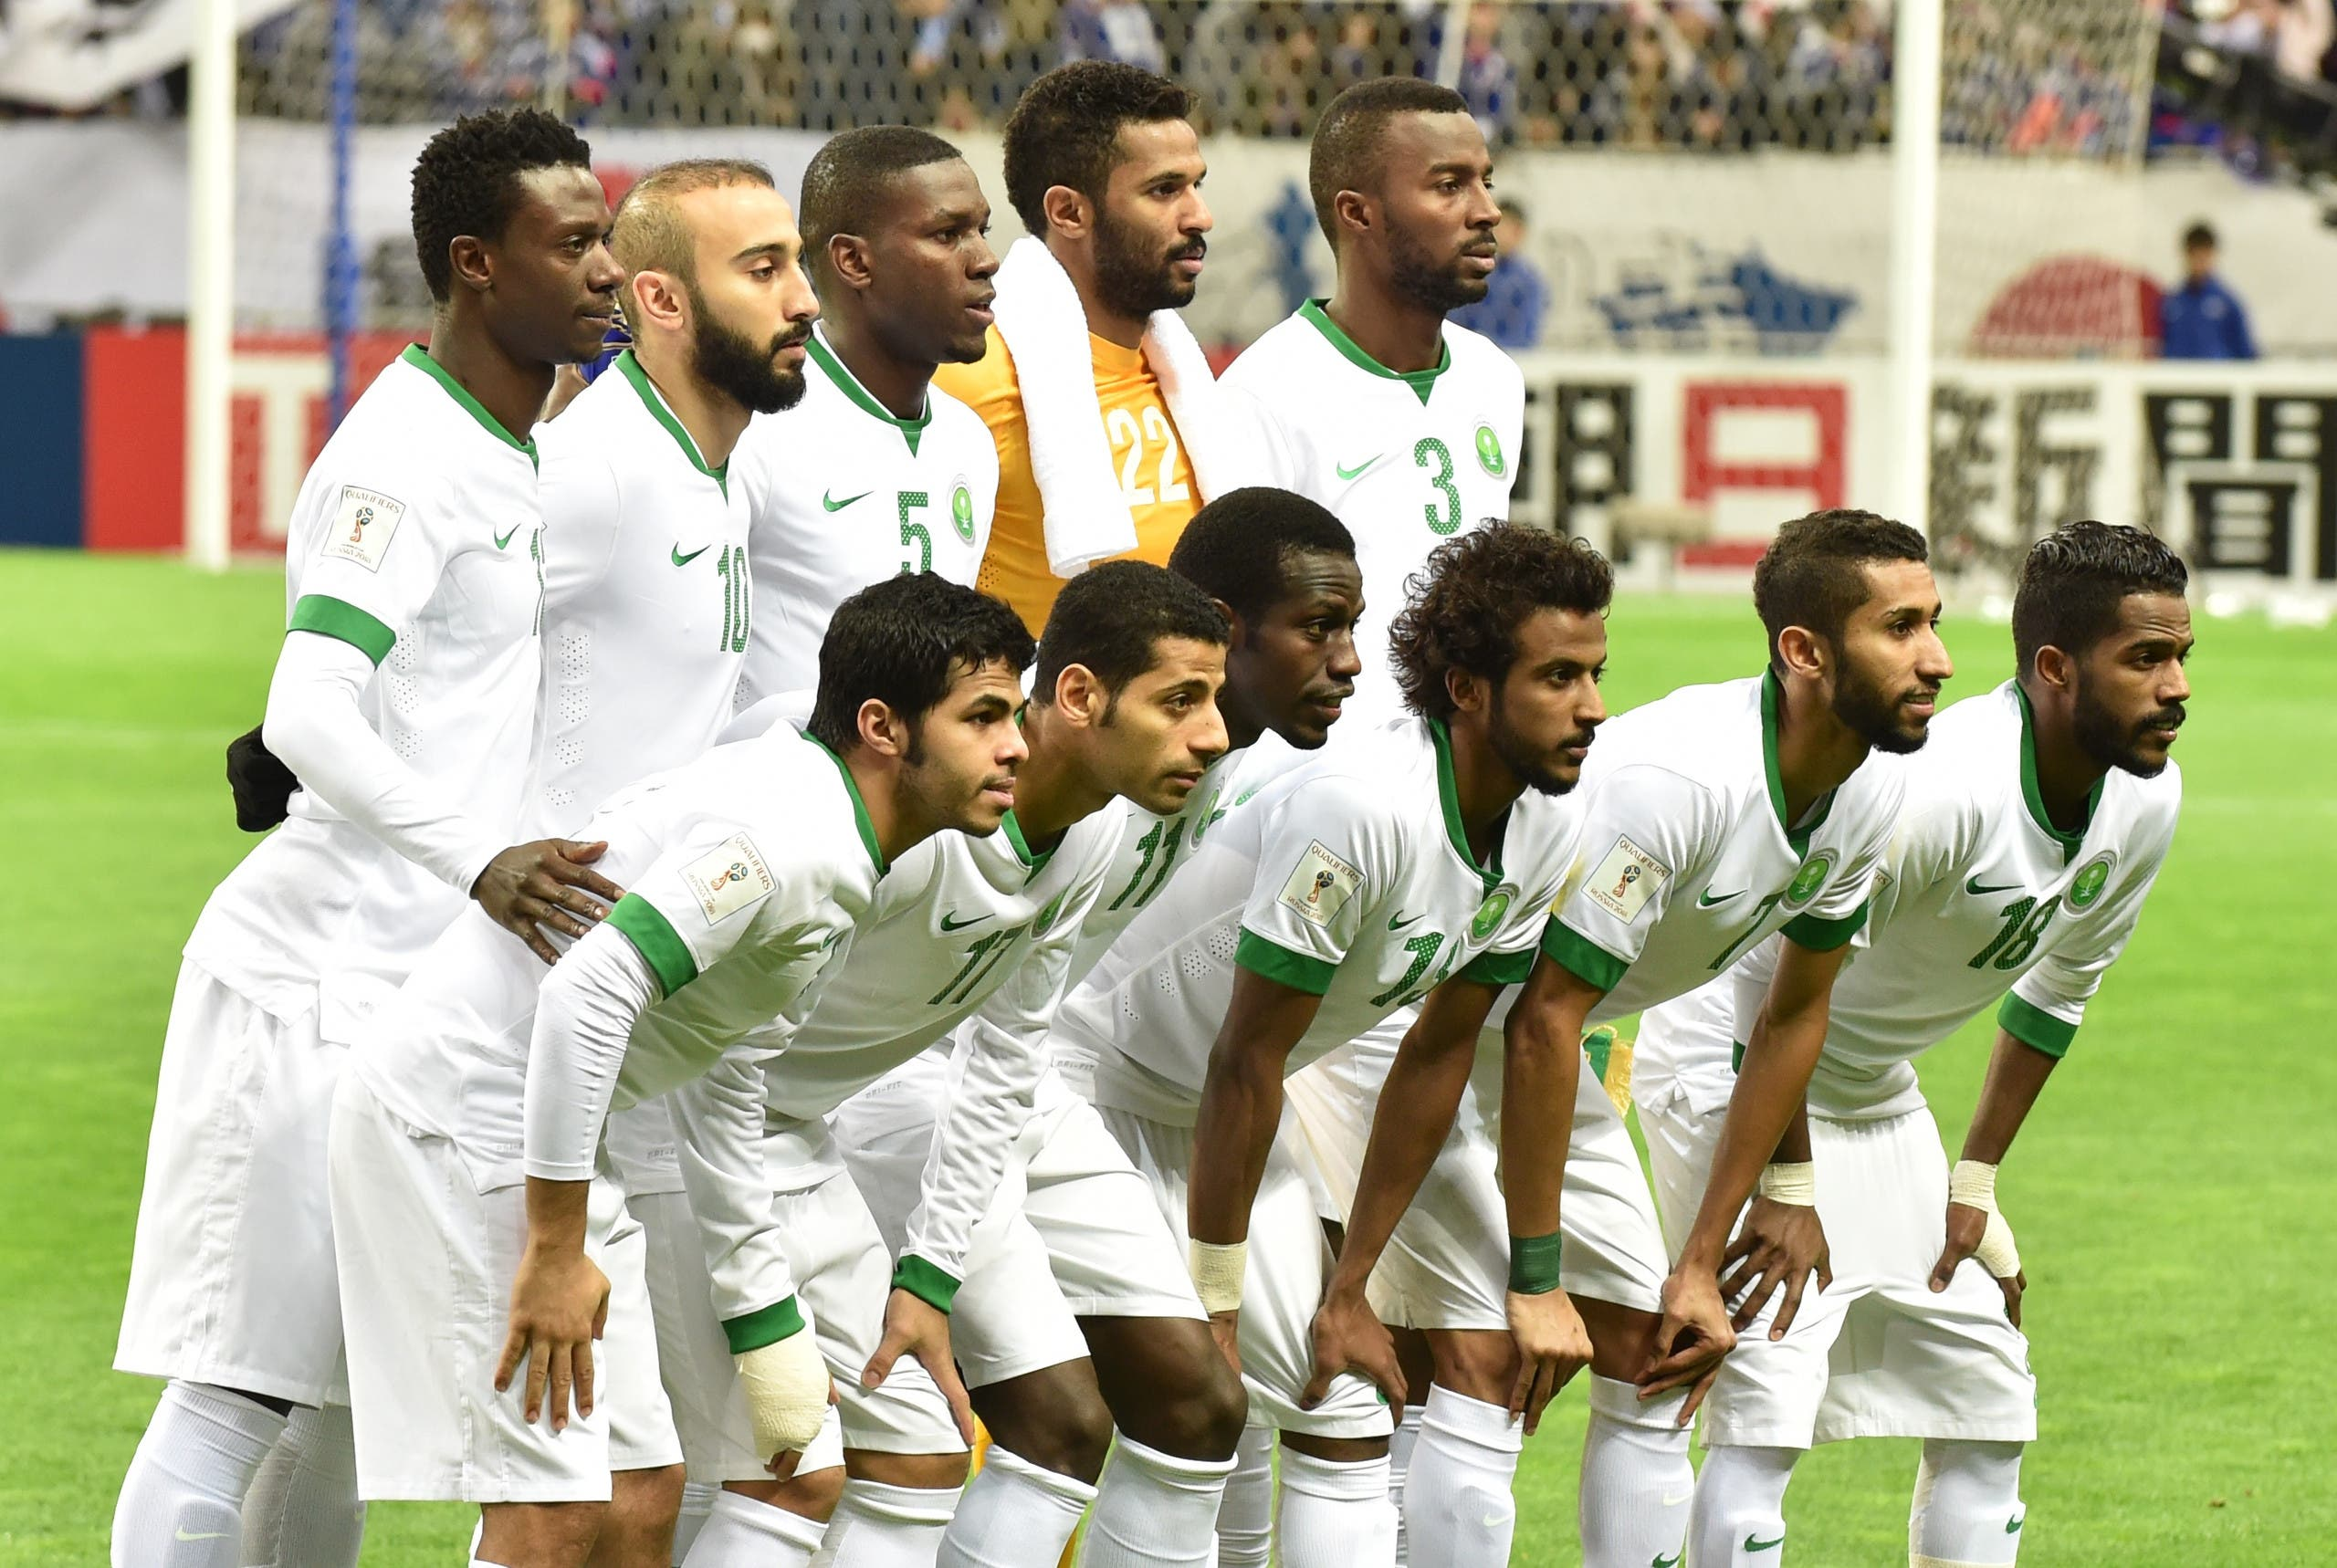 Saudi Arabia's starting players pose during a photo session prior to their football match in Group B of the 2018 World Cup Asian qualifier against Japan at Saitama Stadium in Saitama on November 15, 2016.  KAZUHIRO NOGI / AFP